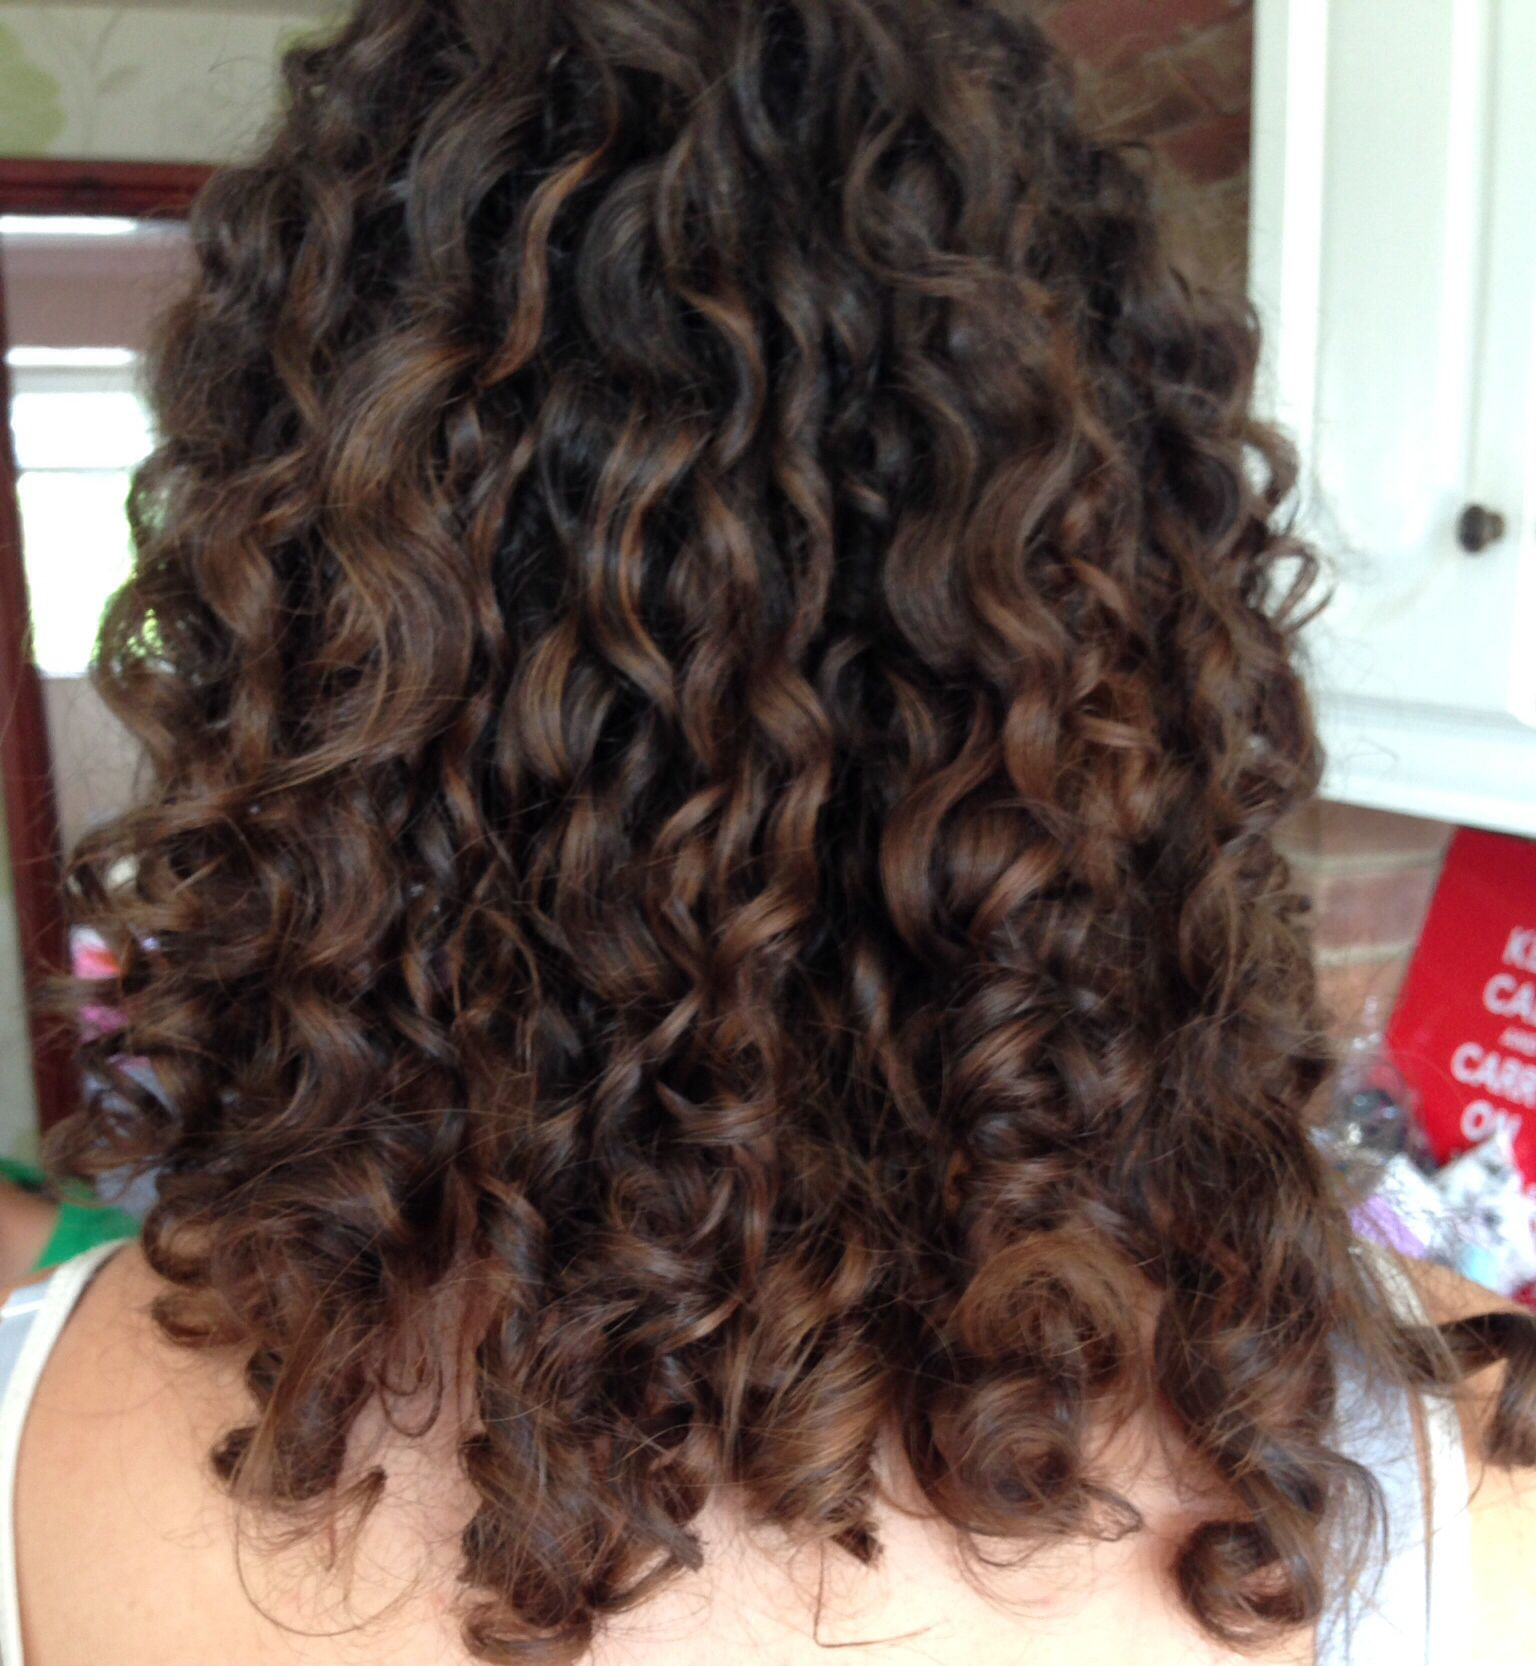 Curly Colour No Foils Painted On Beautiful Curly Hair